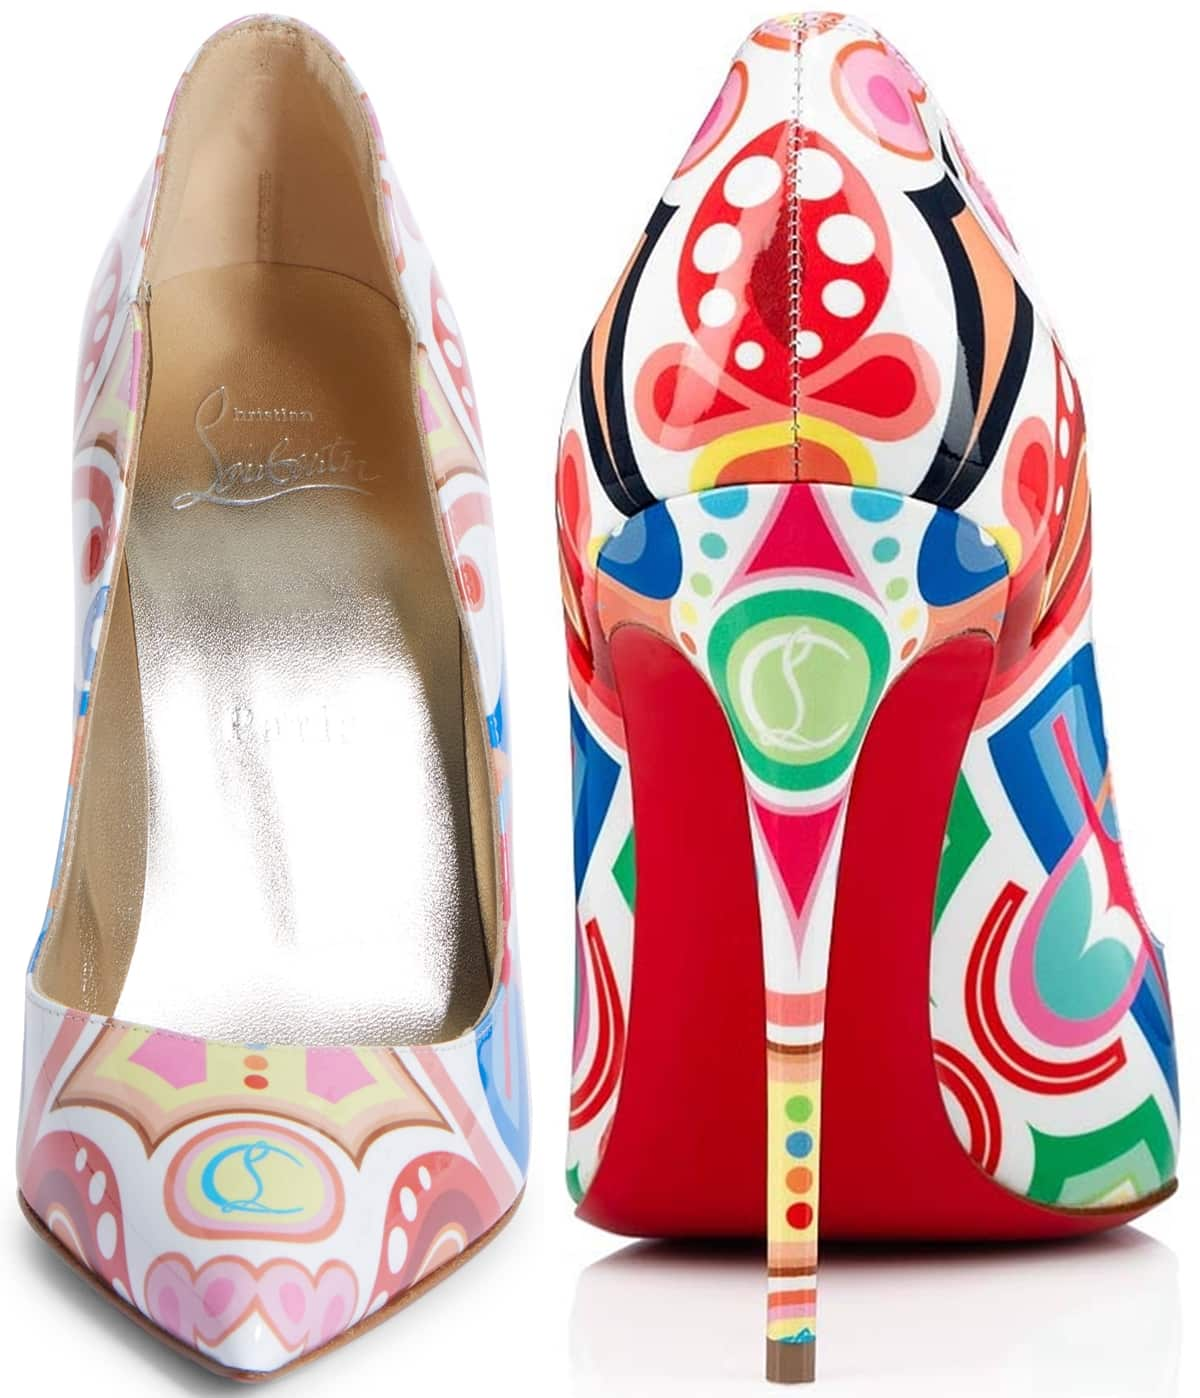 The colorful and festive Tivoli pattern Hot Chick pumps with Christian Louboutin's monogram logo